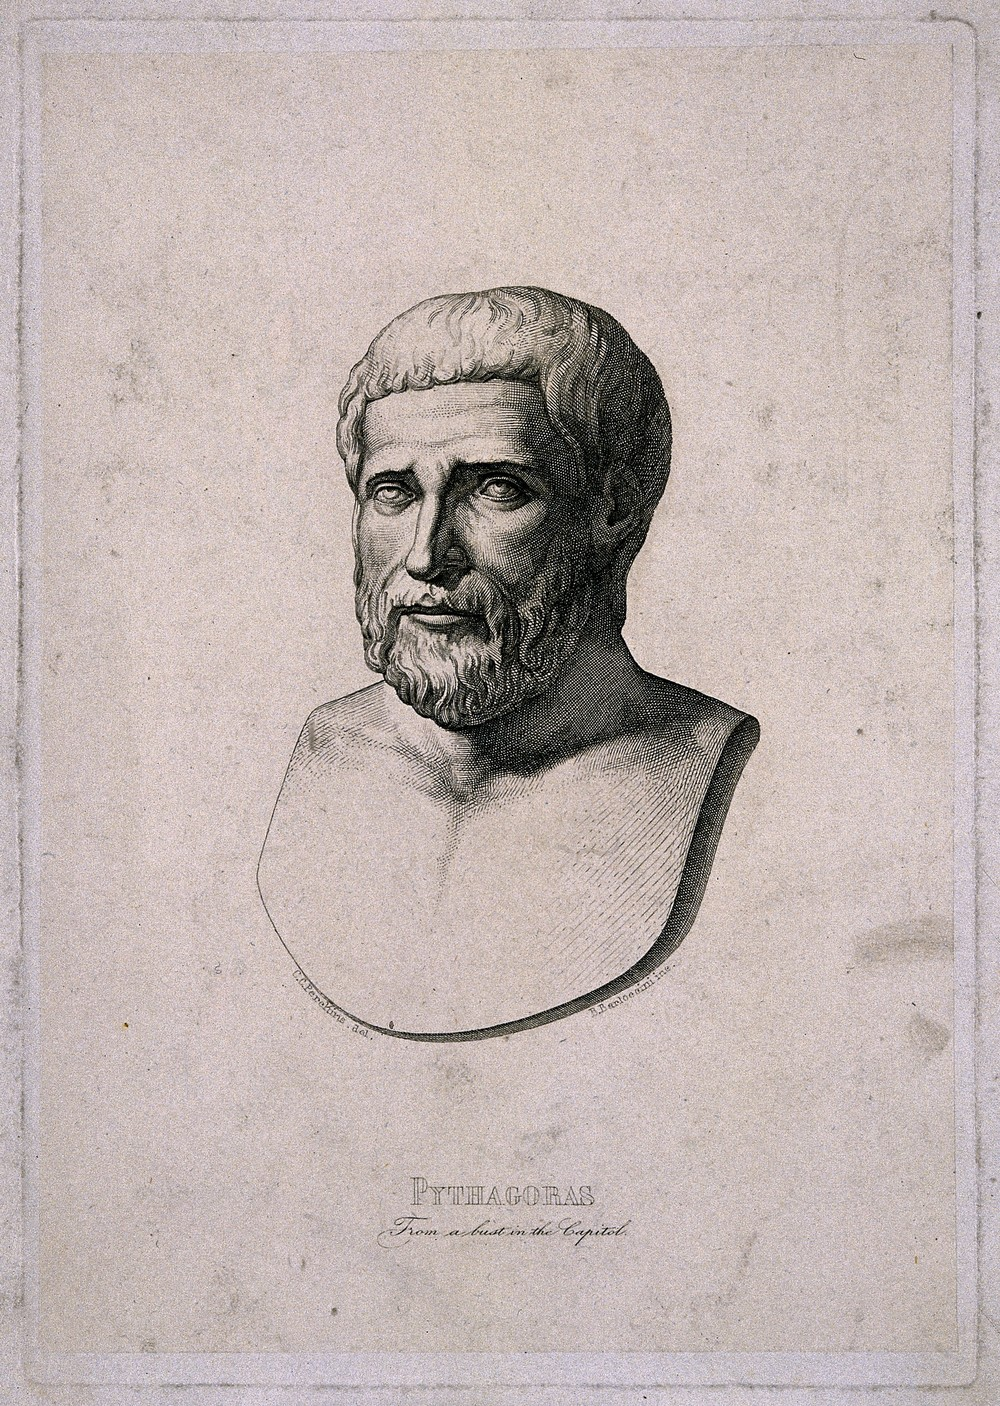 Pythagoras, line engraving by B. Barloccini after C.C. Perks, 1849